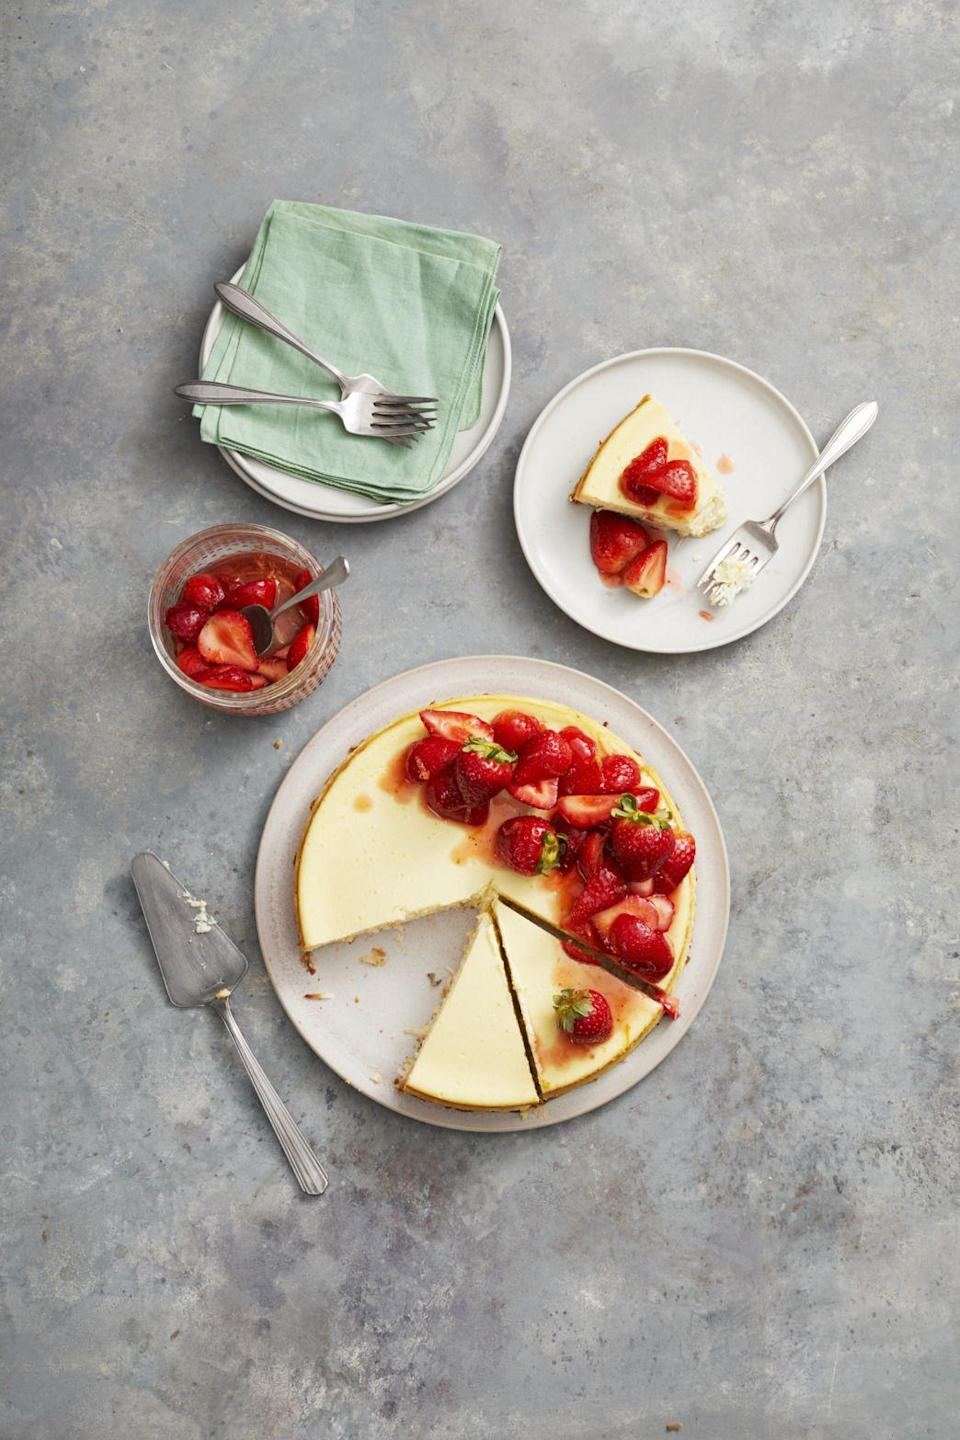 """<p>Strawberries, like all berries, are a <a href=""""https://www.goodhousekeeping.com/health/diet-nutrition/g28511617/healthiest-fruits/"""" rel=""""nofollow noopener"""" target=""""_blank"""" data-ylk=""""slk:healthy fruit"""" class=""""link rapid-noclick-resp"""">healthy fruit</a>: they're great sources of fiber, vitamins, and minerals. But that's just icing on the cake, because as many a kid will tell you, strawberry desserts are where it's at. So after you've had your fill of this fragrant fruit in healthy smoothies and <a href=""""https://www.goodhousekeeping.com/food-recipes/healthy/g2128/summer-salads/"""" rel=""""nofollow noopener"""" target=""""_blank"""" data-ylk=""""slk:summer salads"""" class=""""link rapid-noclick-resp"""">summer salads</a>, and maybe stashed some <a href=""""https://www.goodhousekeeping.com/food-recipes/cooking/a32021072/how-to-freeze-strawberries/"""" rel=""""nofollow noopener"""" target=""""_blank"""" data-ylk=""""slk:frozen strawberries"""" class=""""link rapid-noclick-resp"""">frozen strawberries</a> in your freezer, treat your loved ones (and yourself) to what you were really craving and whip up one of these after-dinner winners.</p><p>Whether you dip them in chocolate, bake them in a pie, or throw them on the grill (yes, really), here are 20 sweet ways to eat the quintessential summer berry that'll feel like an indulgent treat every time.</p>"""